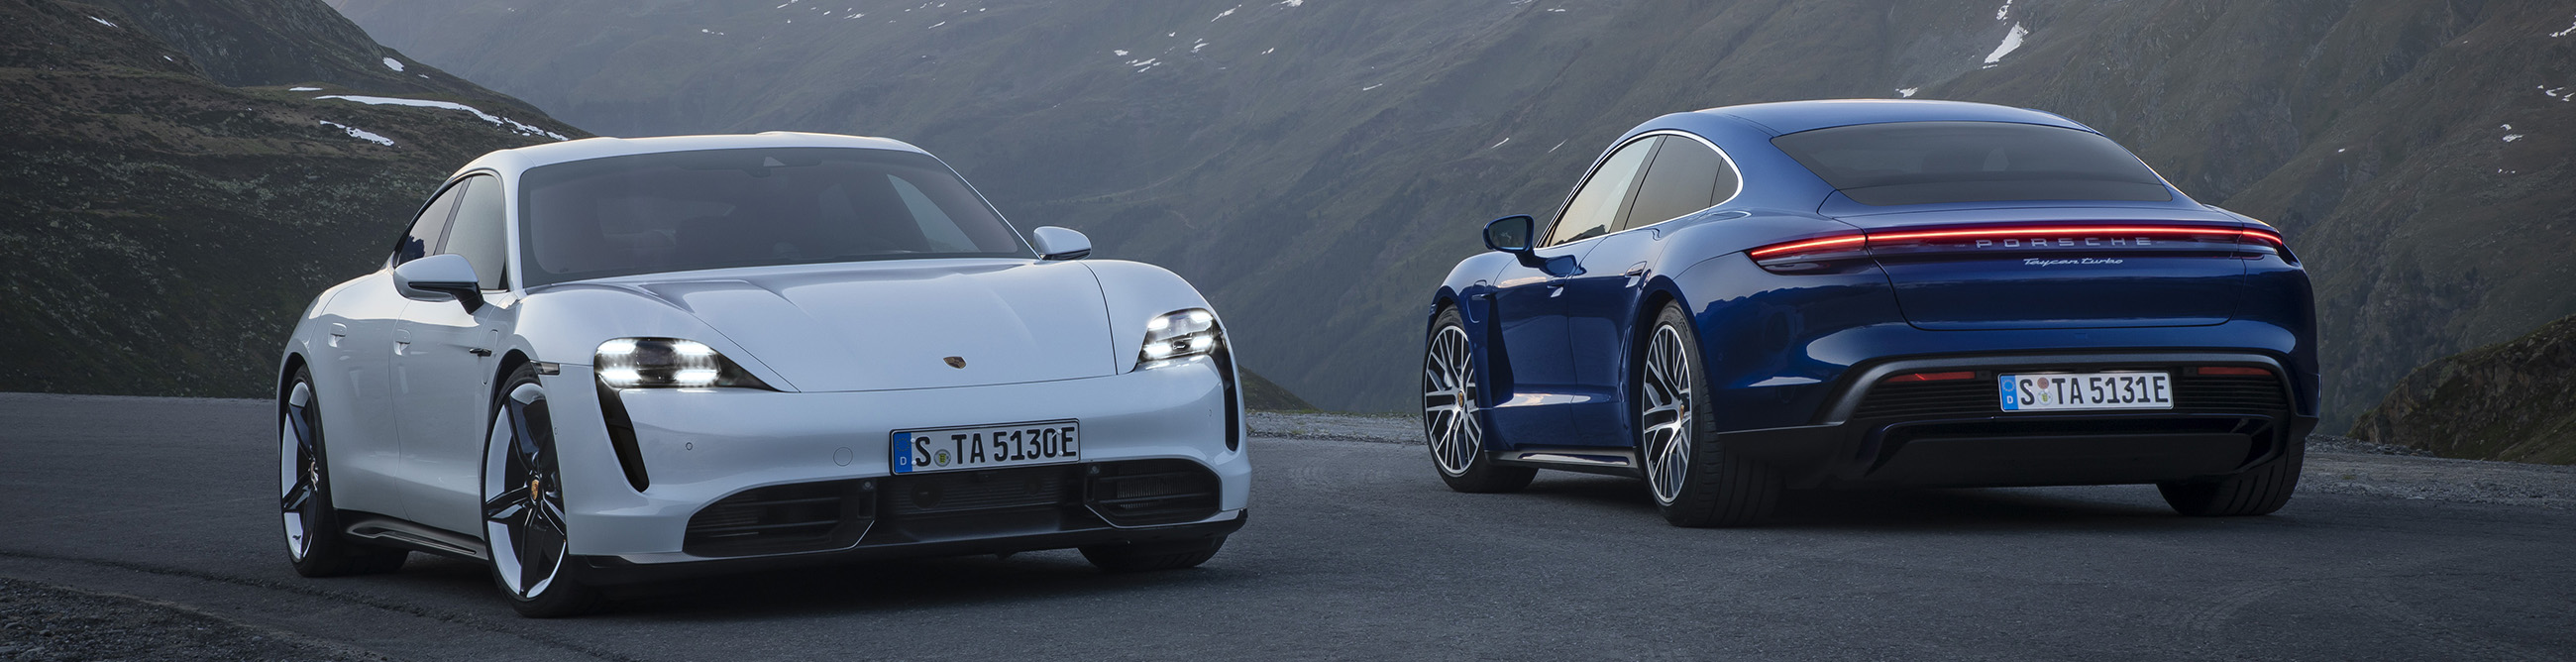 Porsche Taycan Turbo and Turbo S: Pricing, Stats, Best